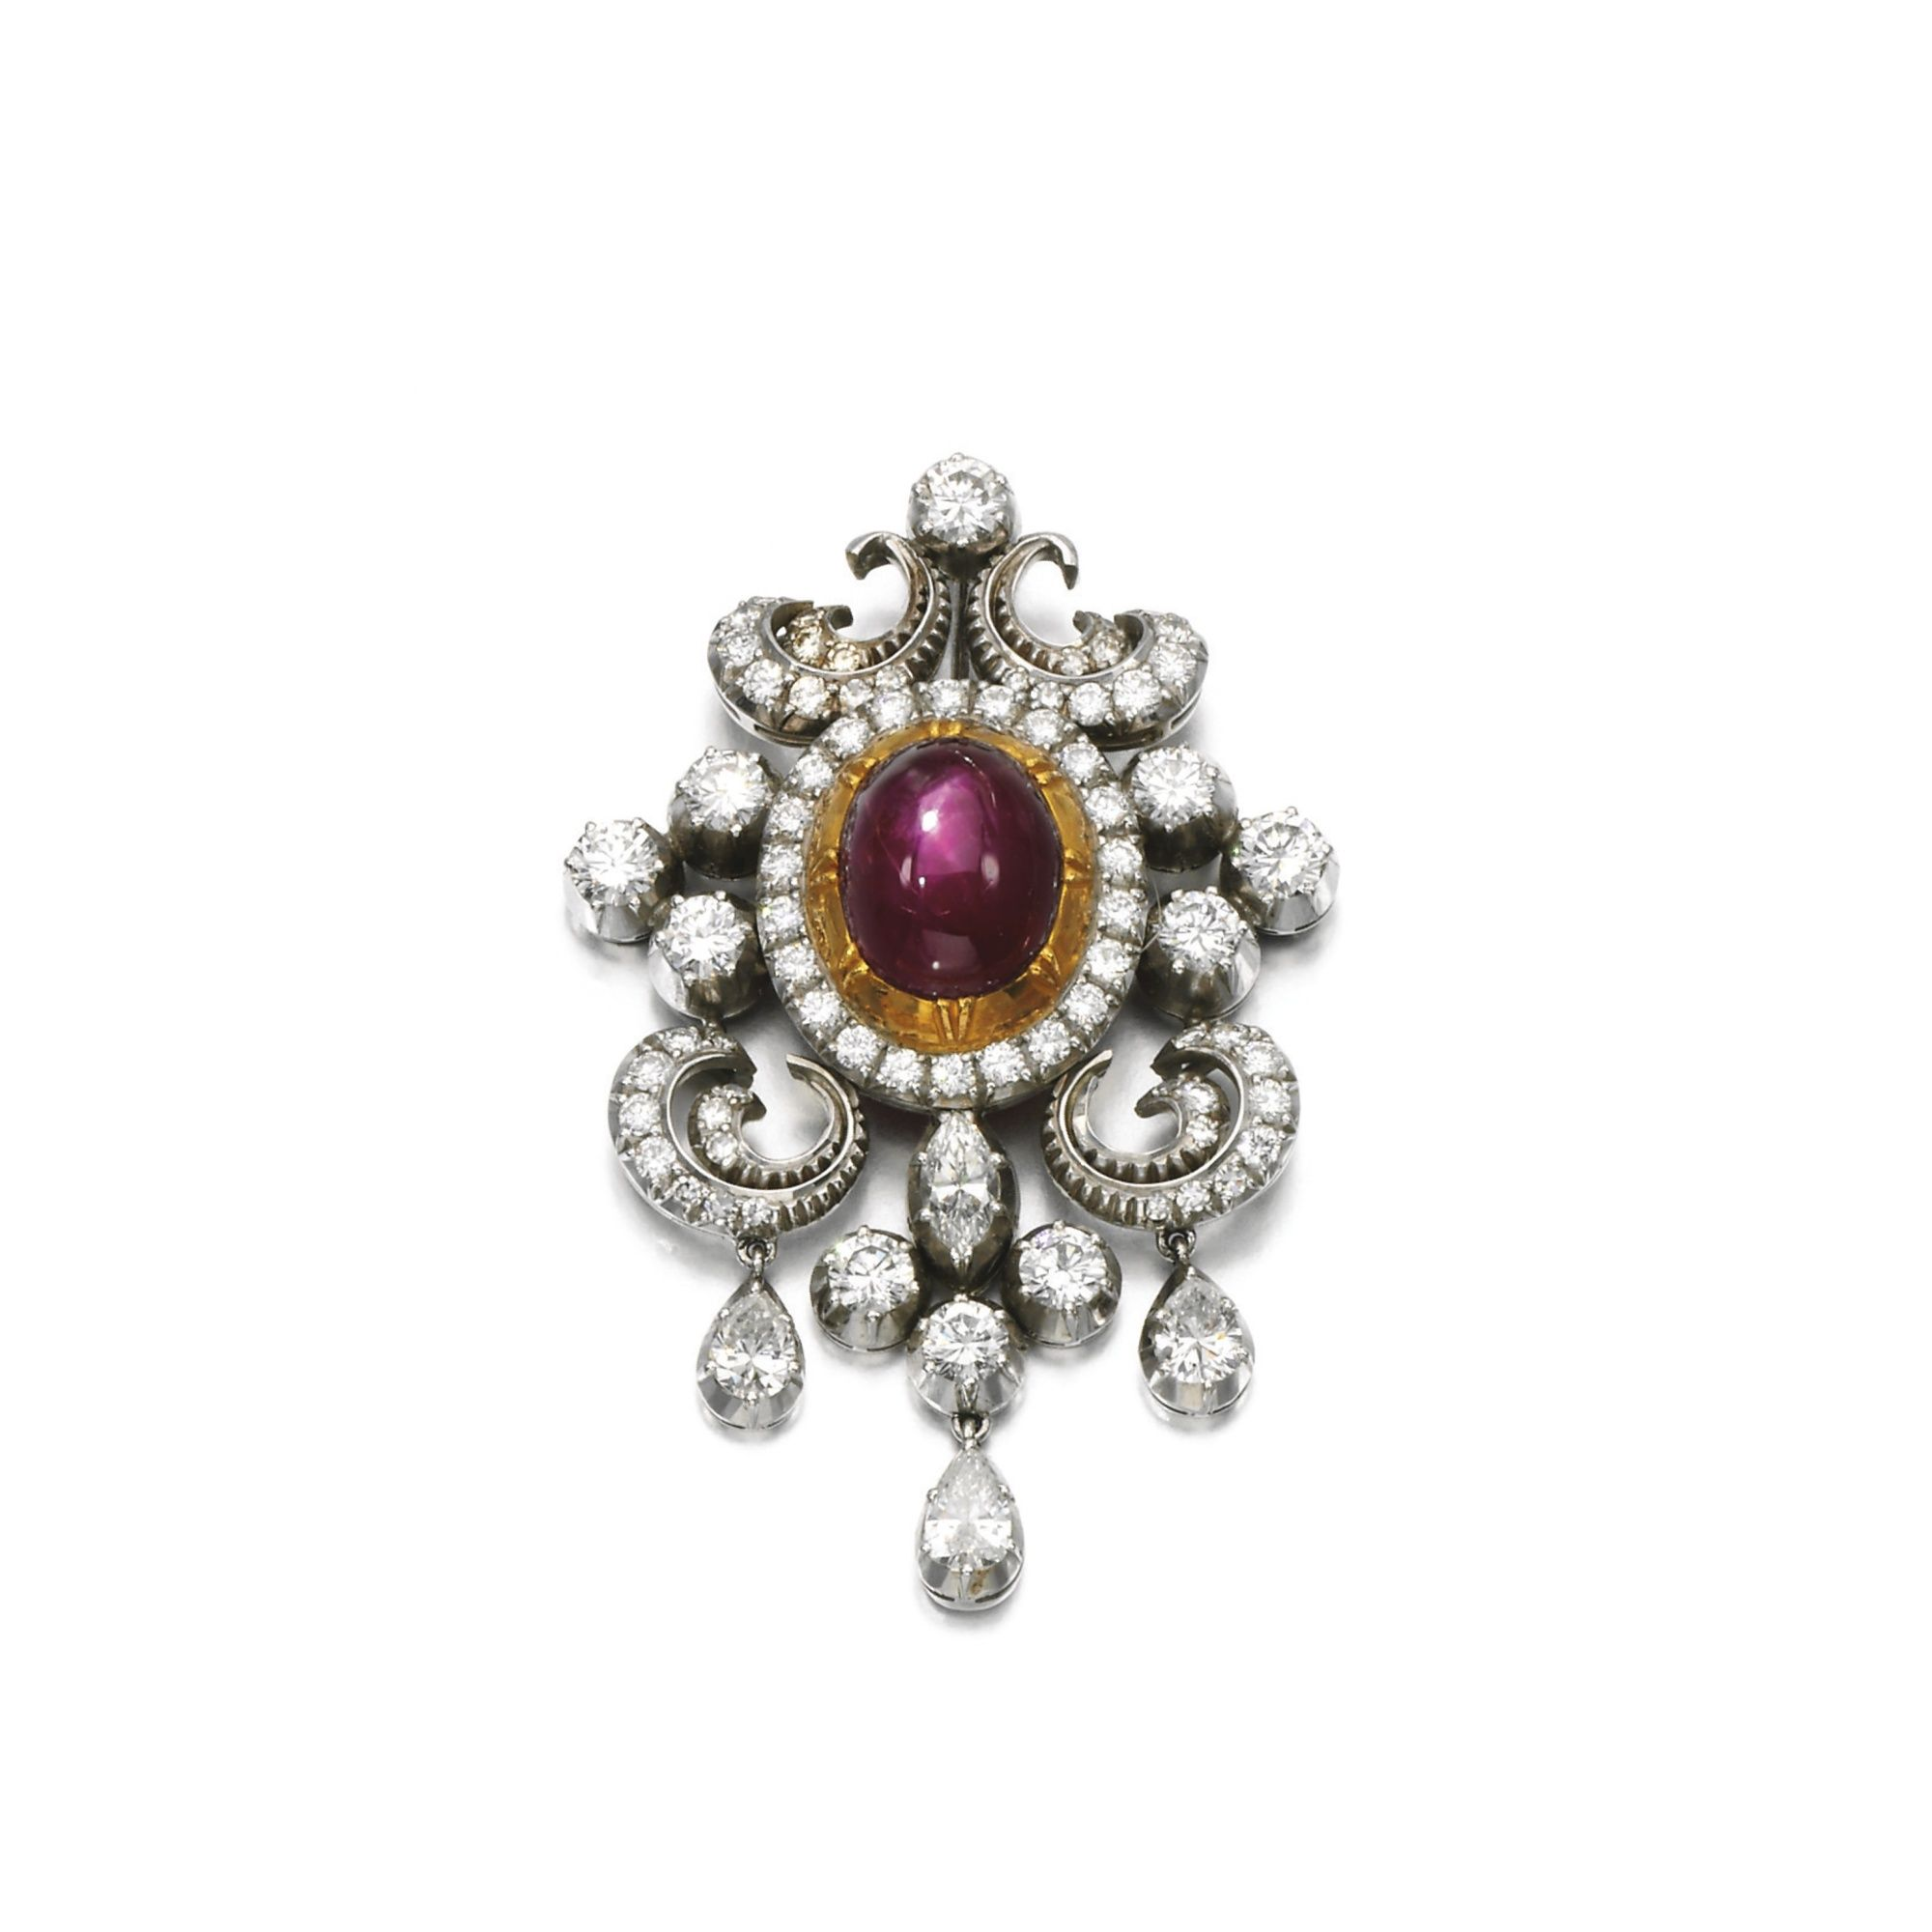 Star ruby and diamond brooch pendant set with a star ruby within a